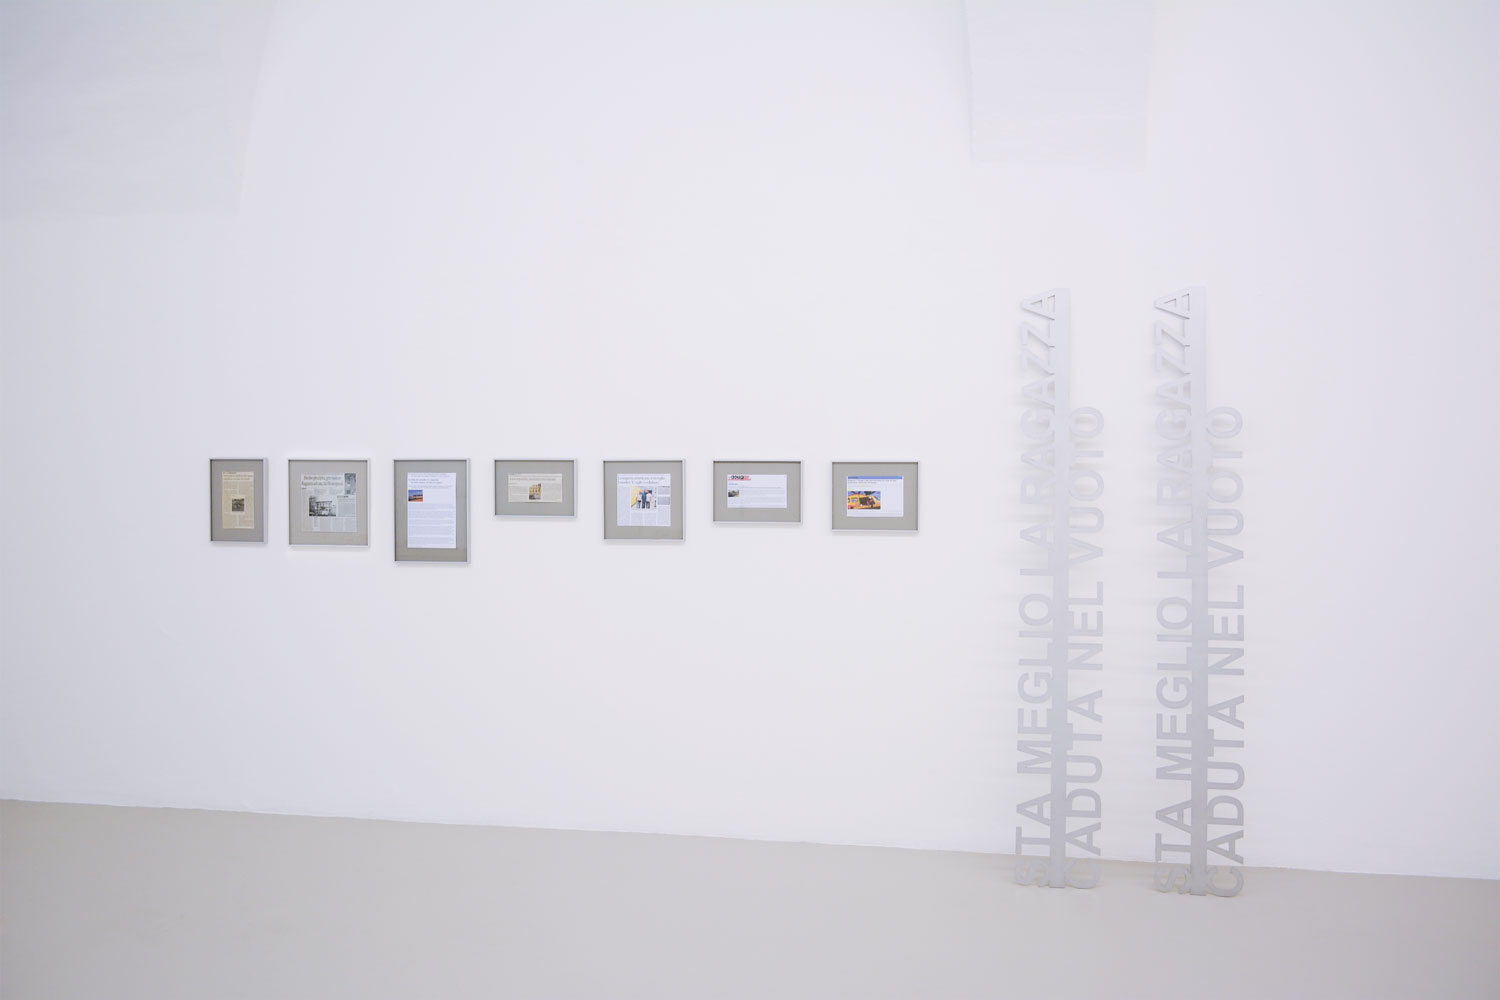 @ar/ge kunst, Bozen/Bolzano, 2016, photo by aners (exhibition view)